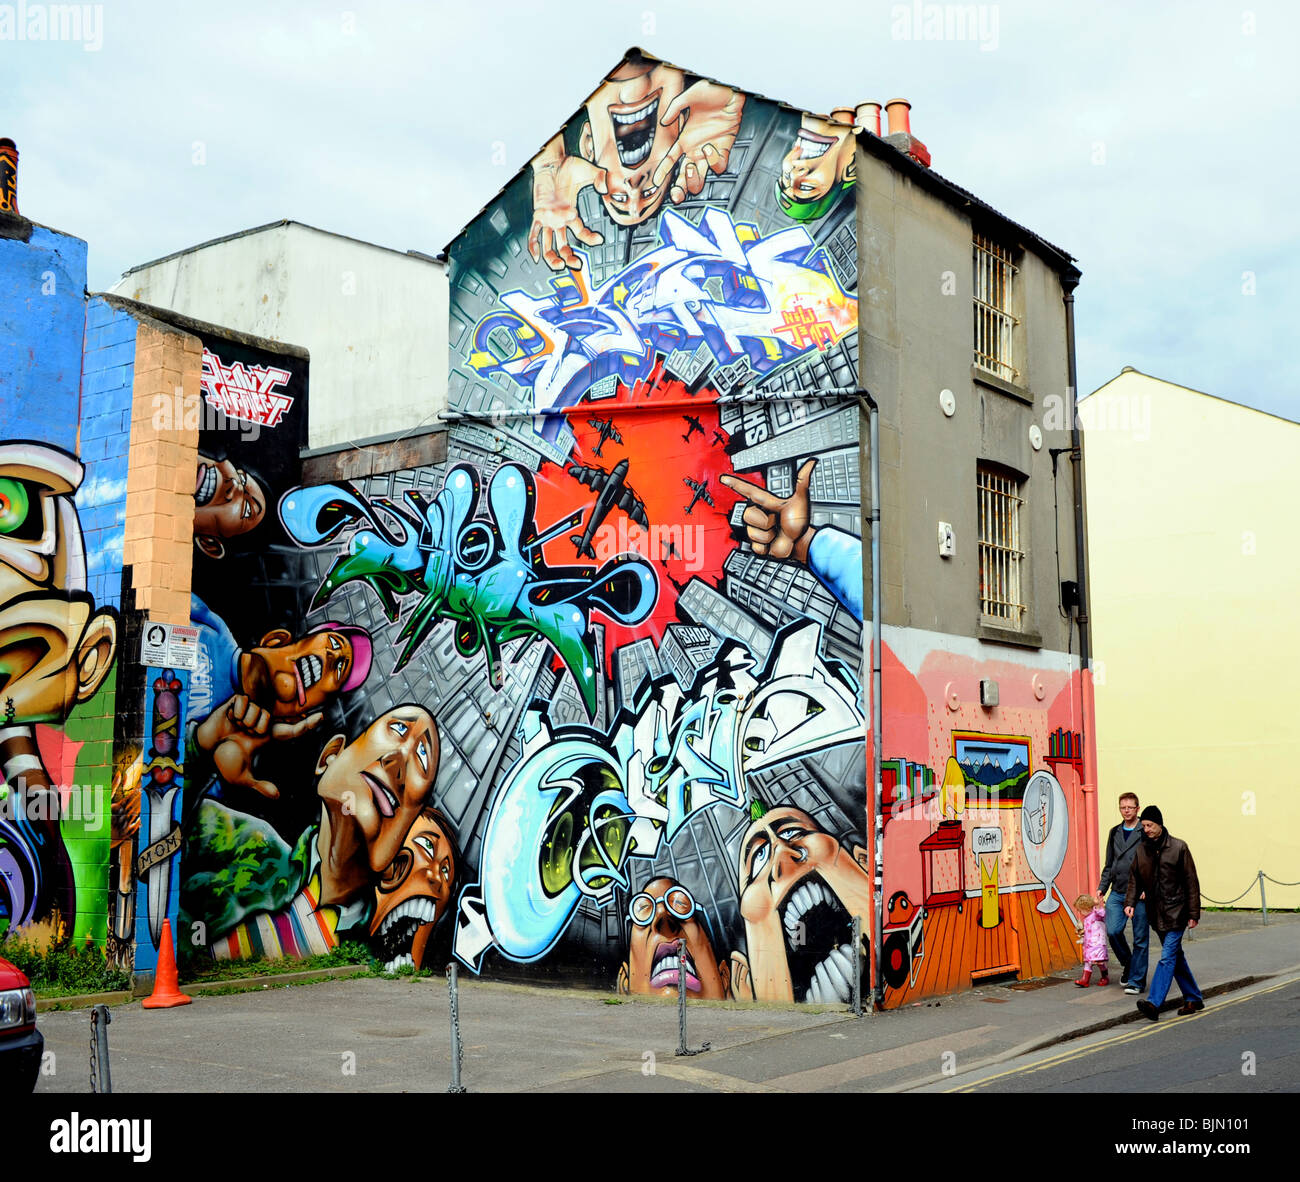 Buildings covered in approved graffiti art in the north laine area of brighton city centre uk